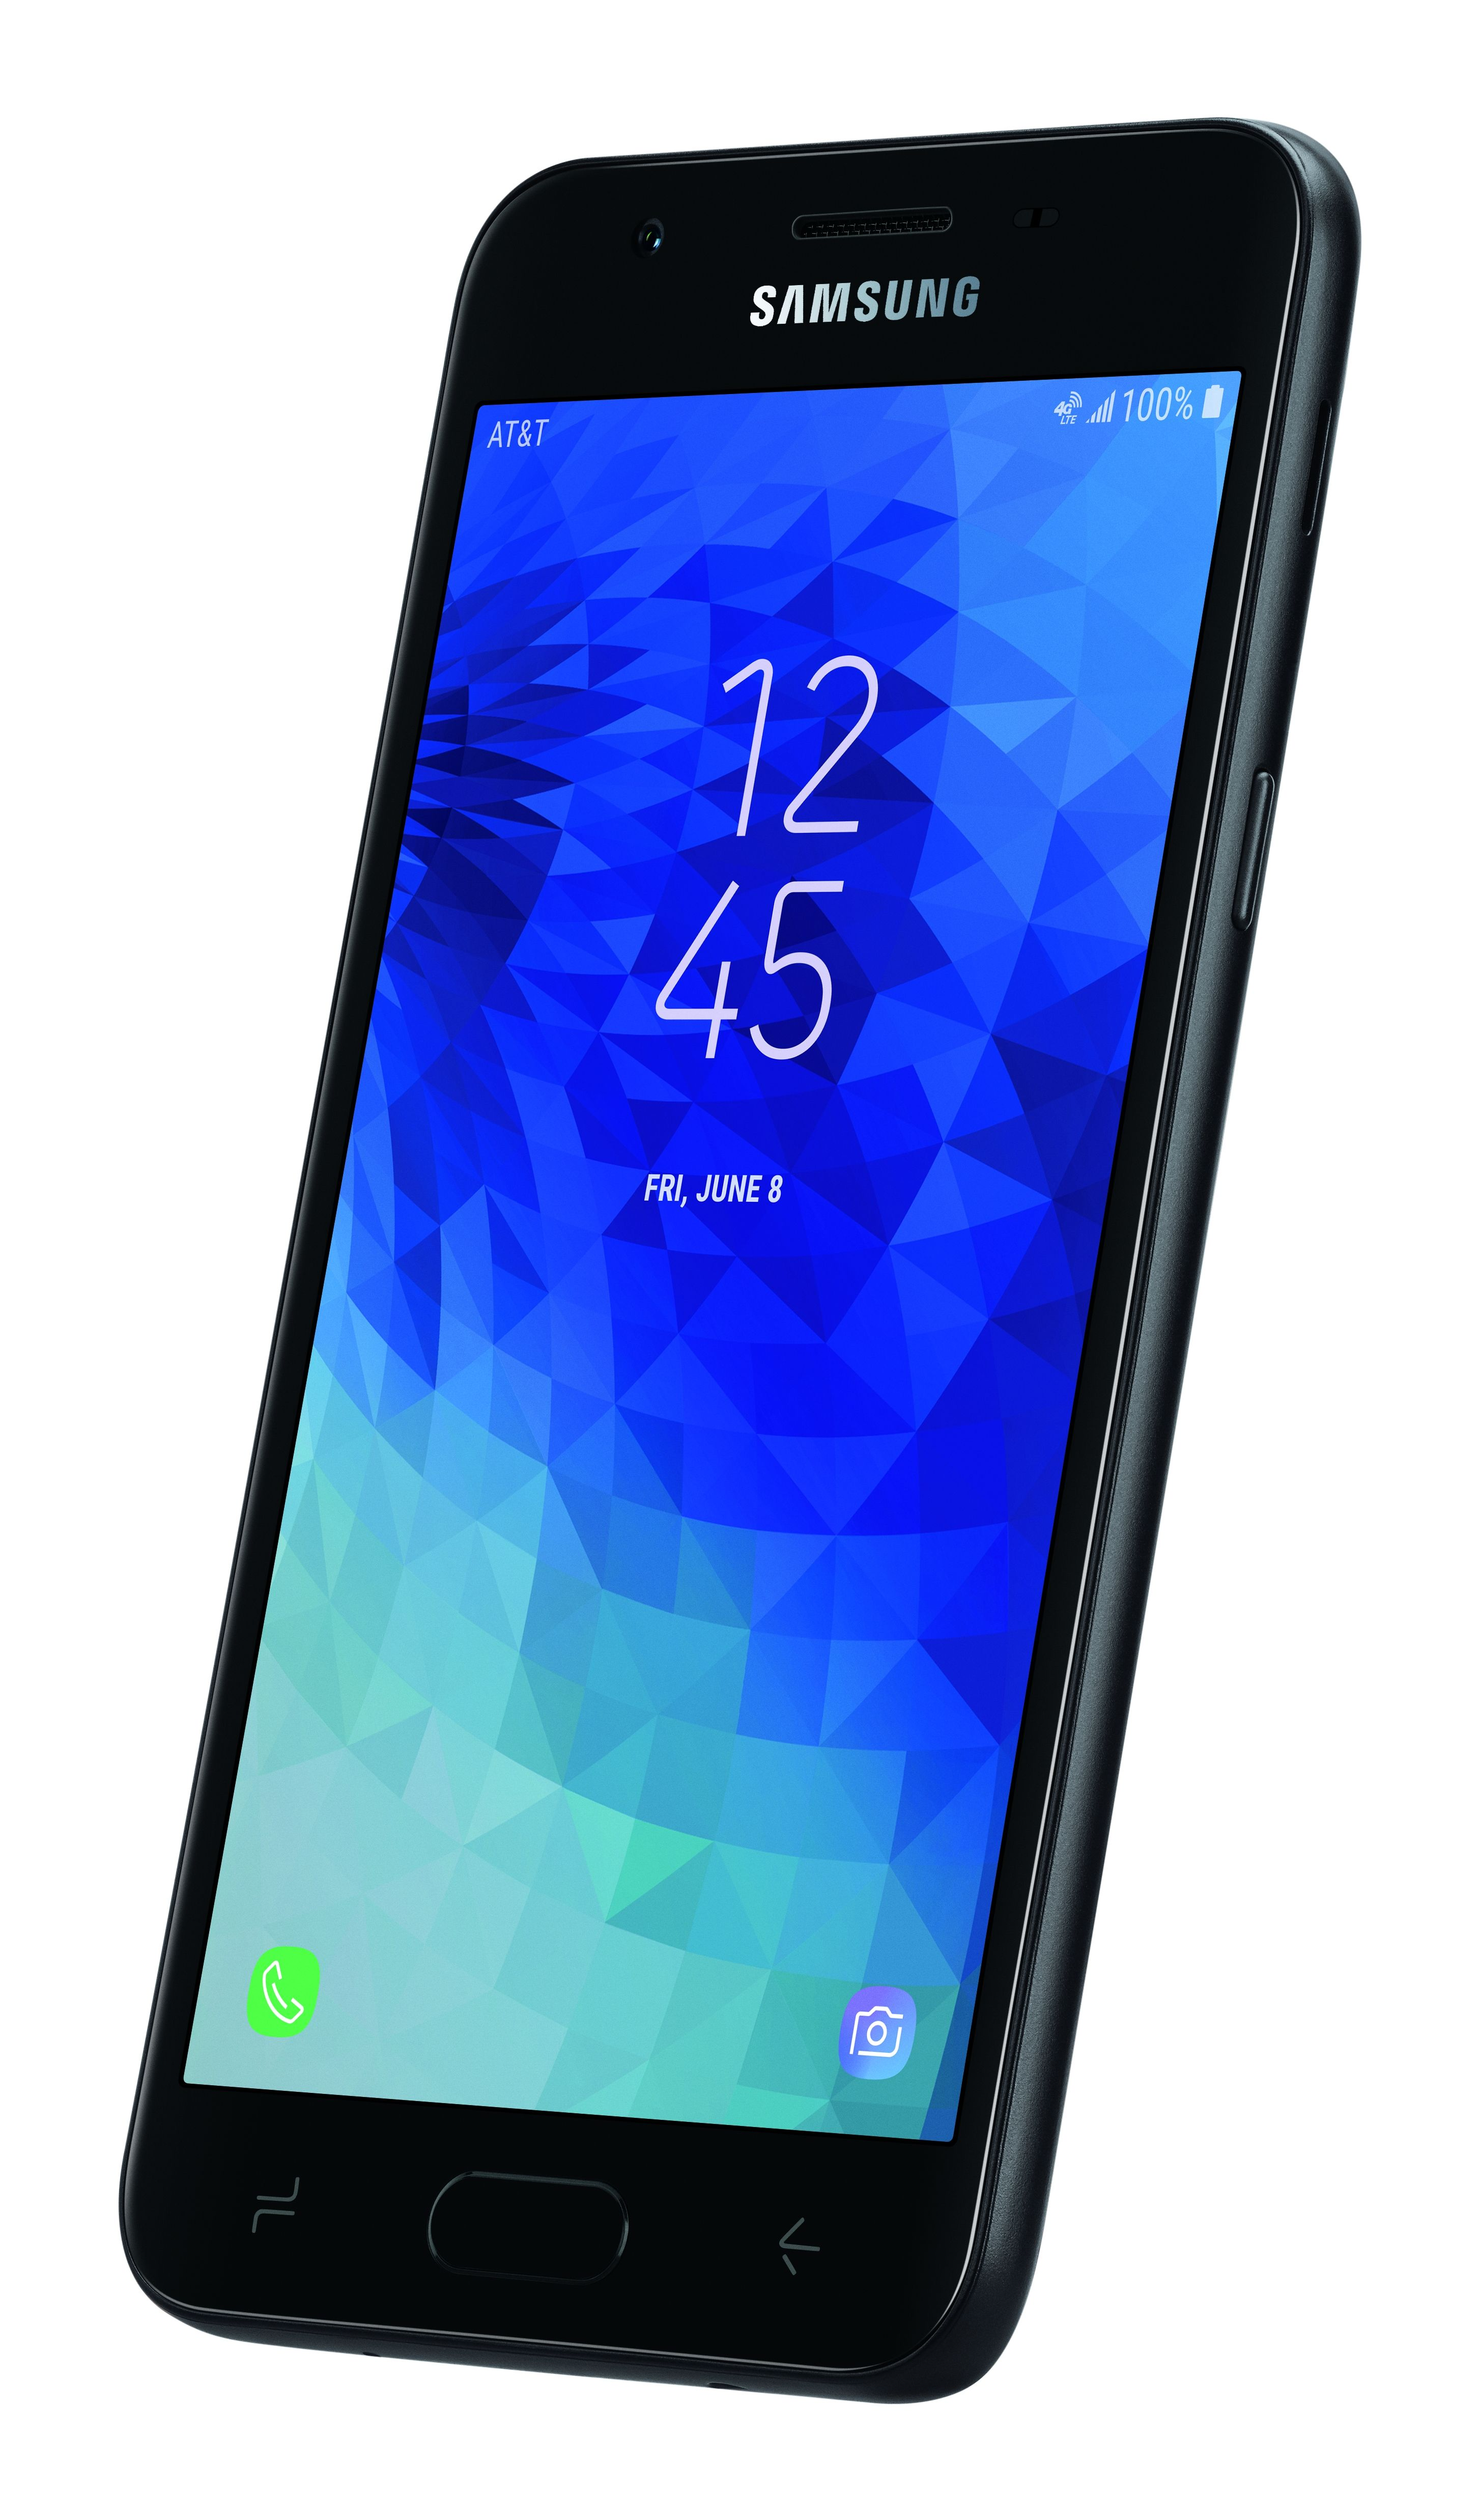 AT&T PREPAID Samsung Galaxy Express Prime 3 – Get UNLIMITED DATA. Details...